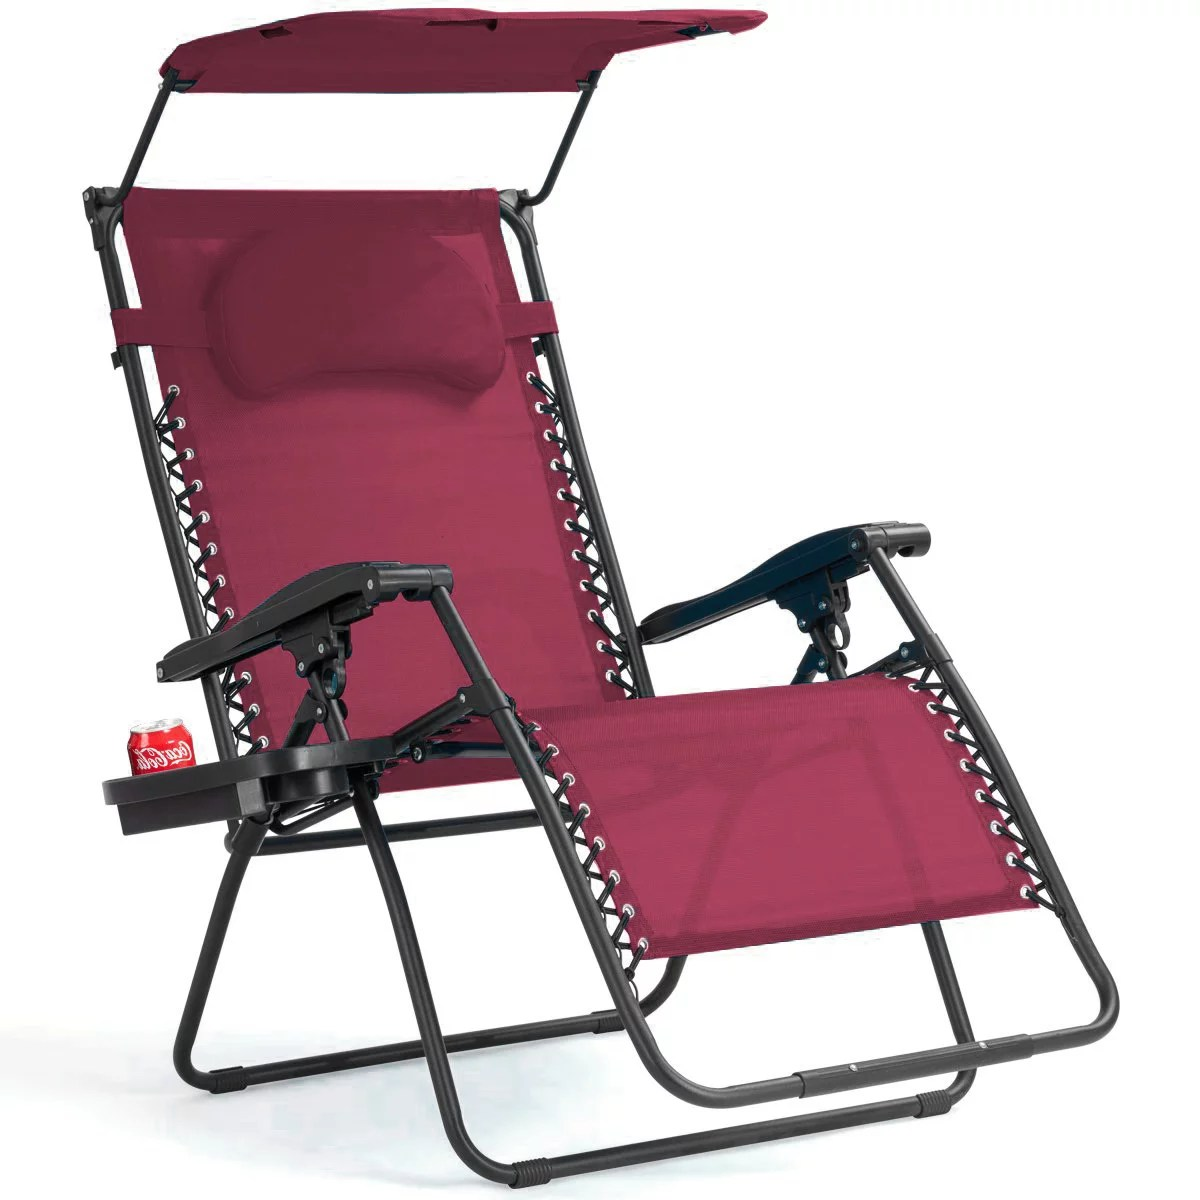 Zero Gravity Chair Recliner Gymax Folding Recliner Zero Gravity Lounge Chair W Shade Canopy Cup Holder Wine